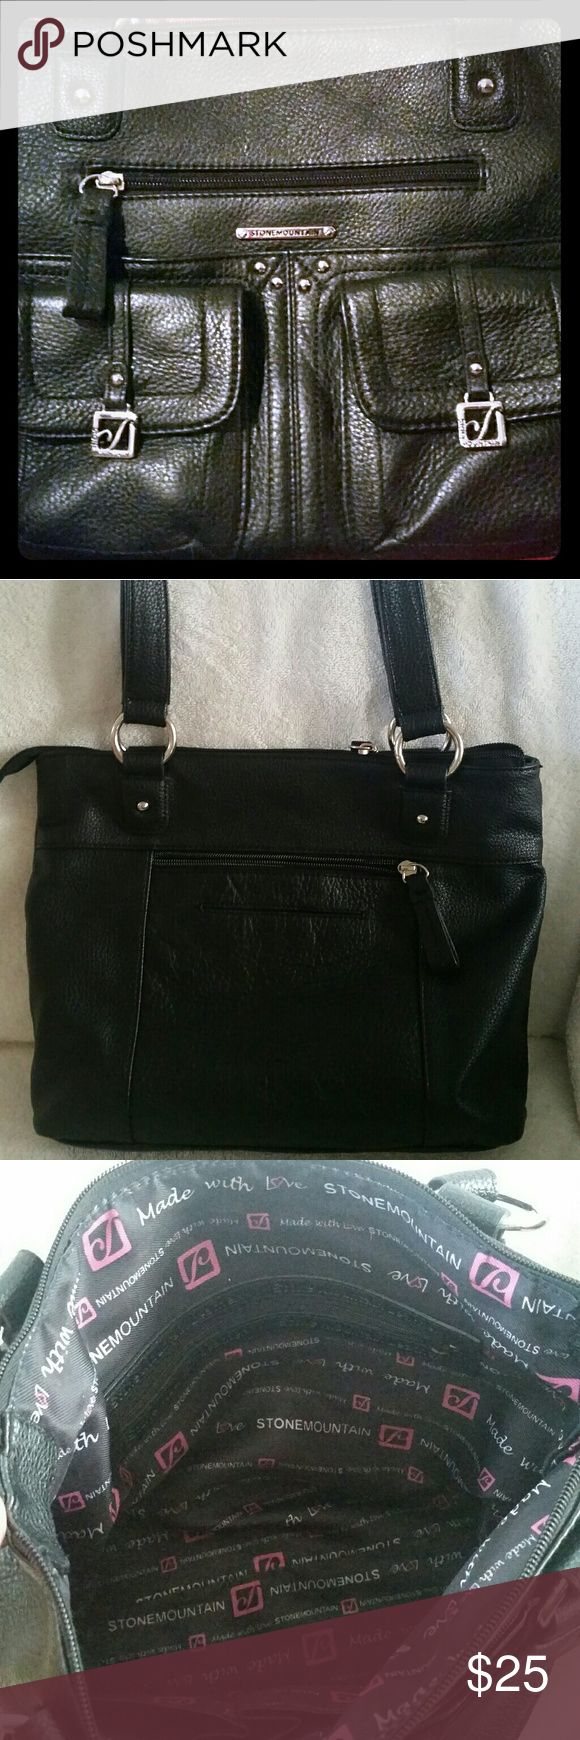 """Stone Mountain Black Pebbled Leather Shoulder Bag Excellent Condition/Pebbled Leather/12 compartments to organize/Clean Interior/No Flaws 13"""" w Stone Mountain Bags Shoulder Bags"""